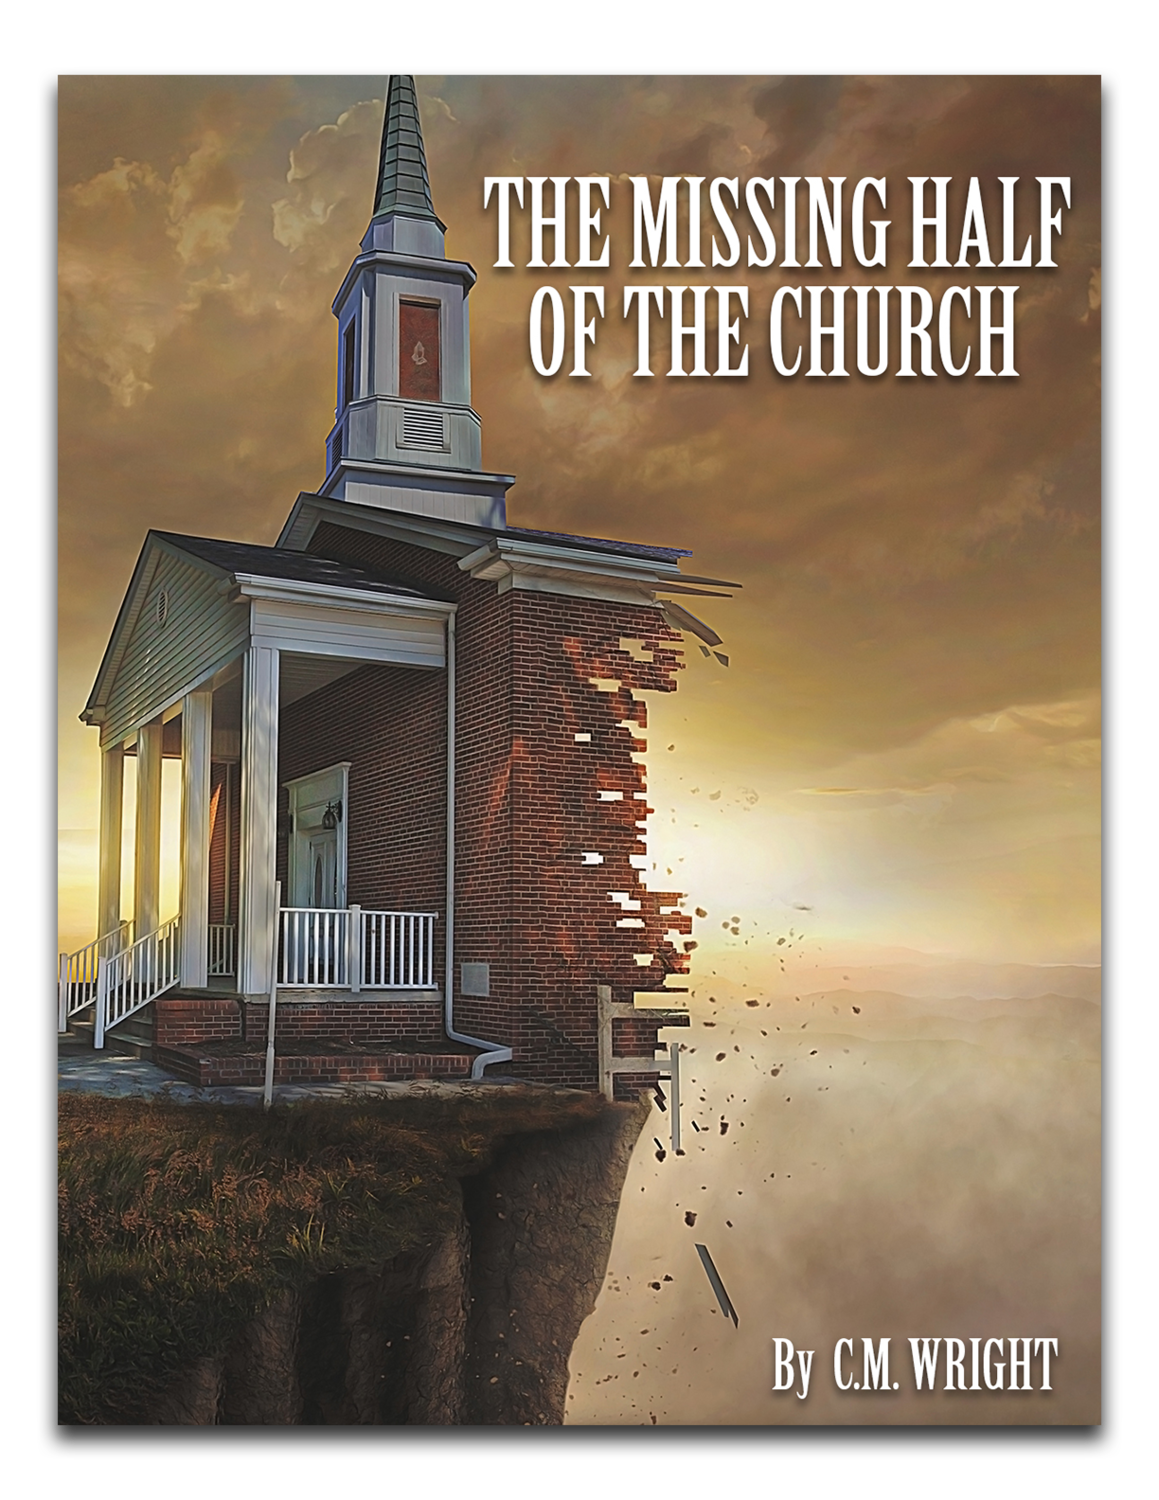 The Missing Half of the Church By Bishop M. Wright